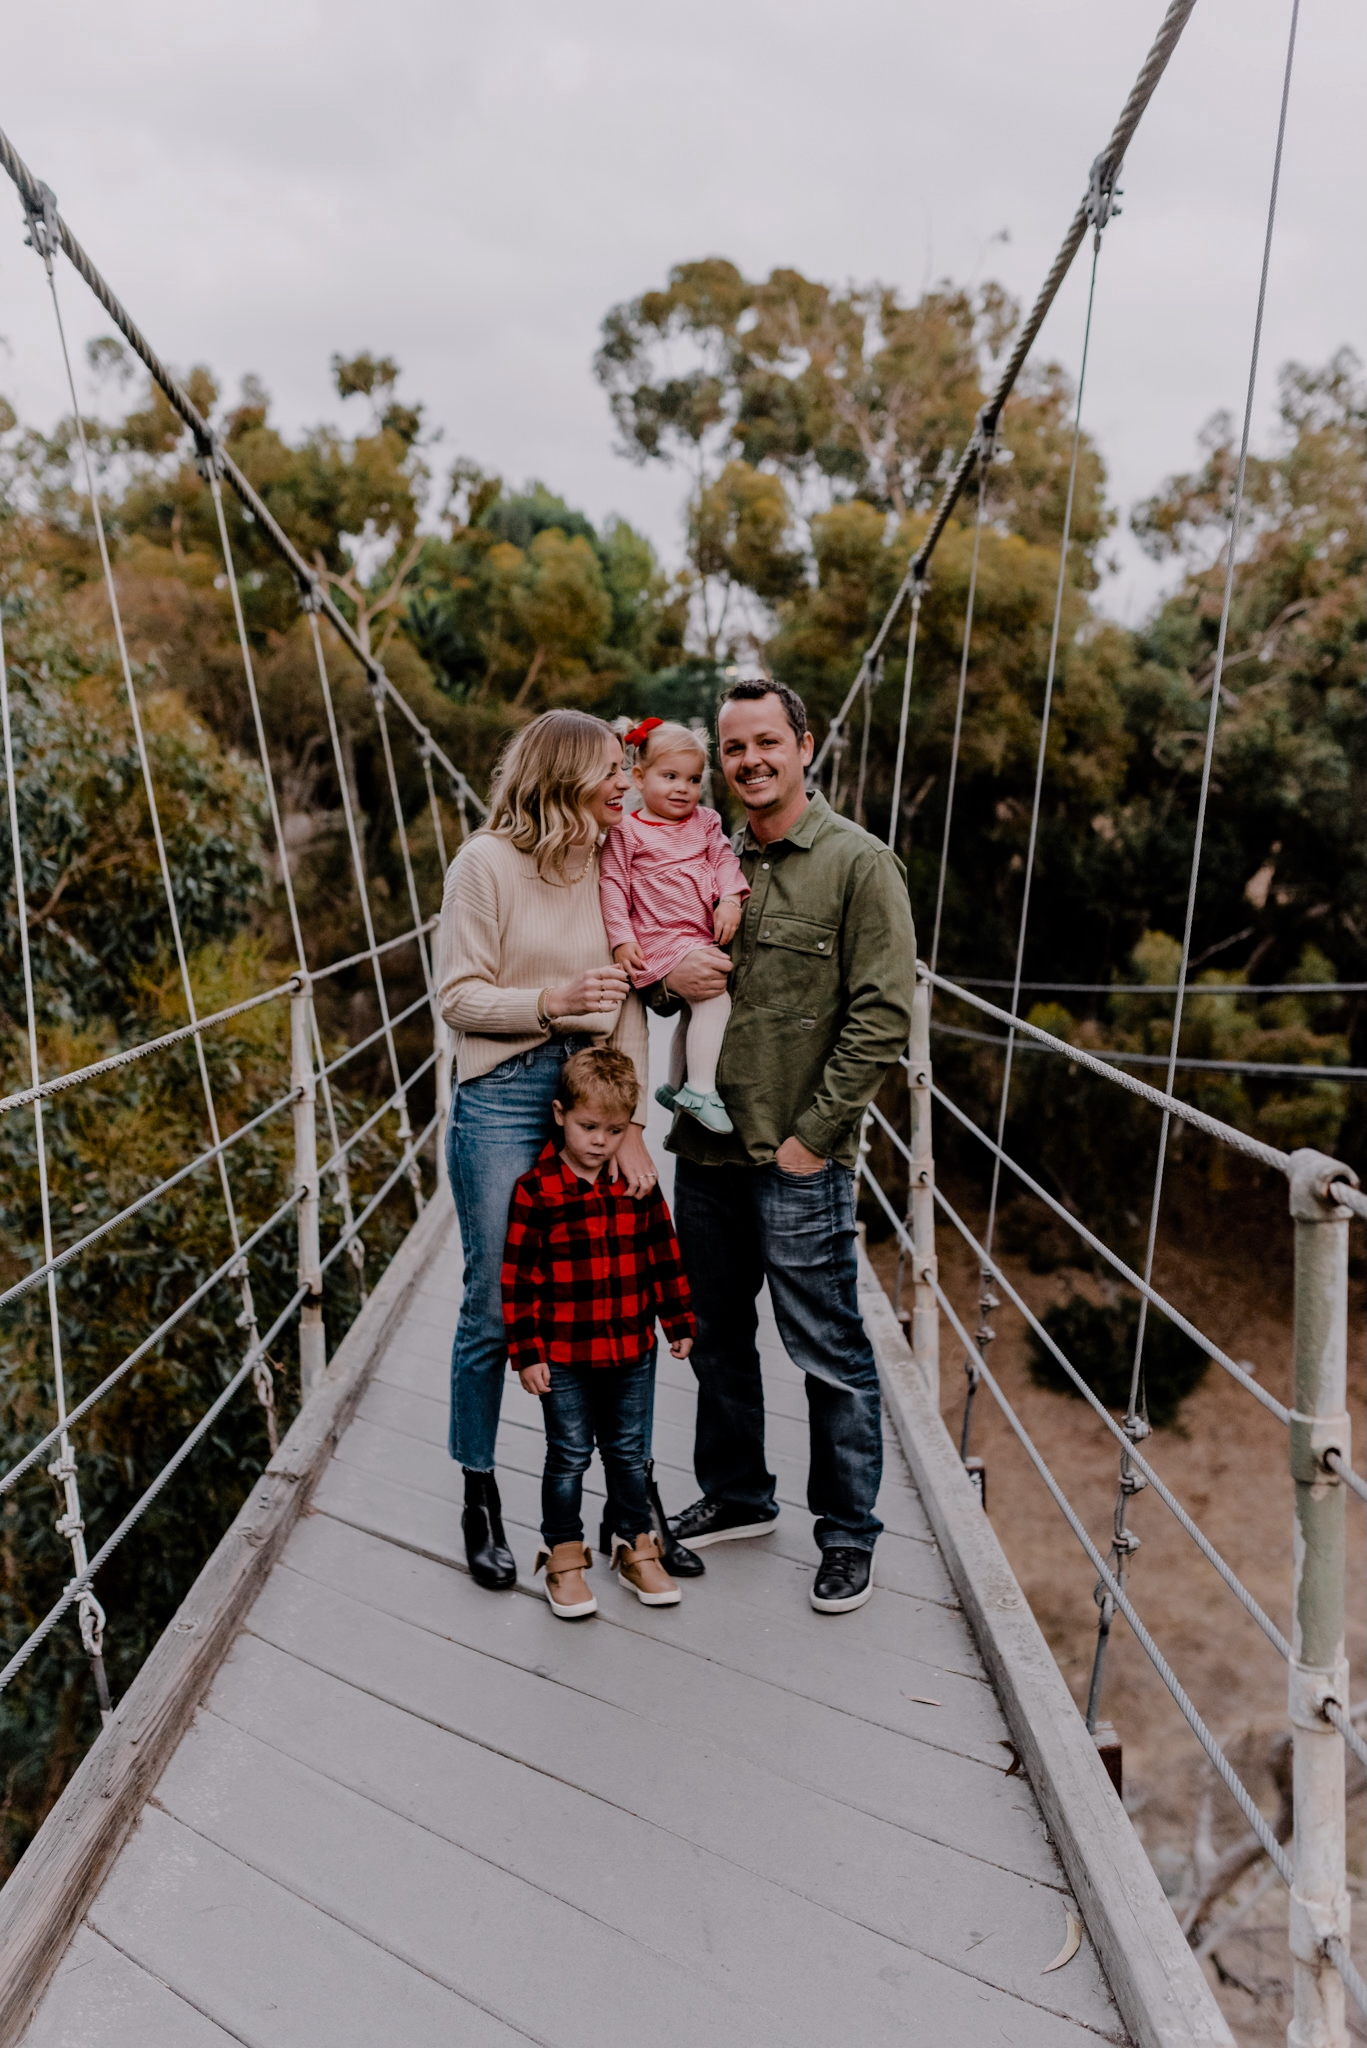 Amazon Finds by popular San Diego life and style blog, Navy Grace: image of a family standing together on a suspension bridge.